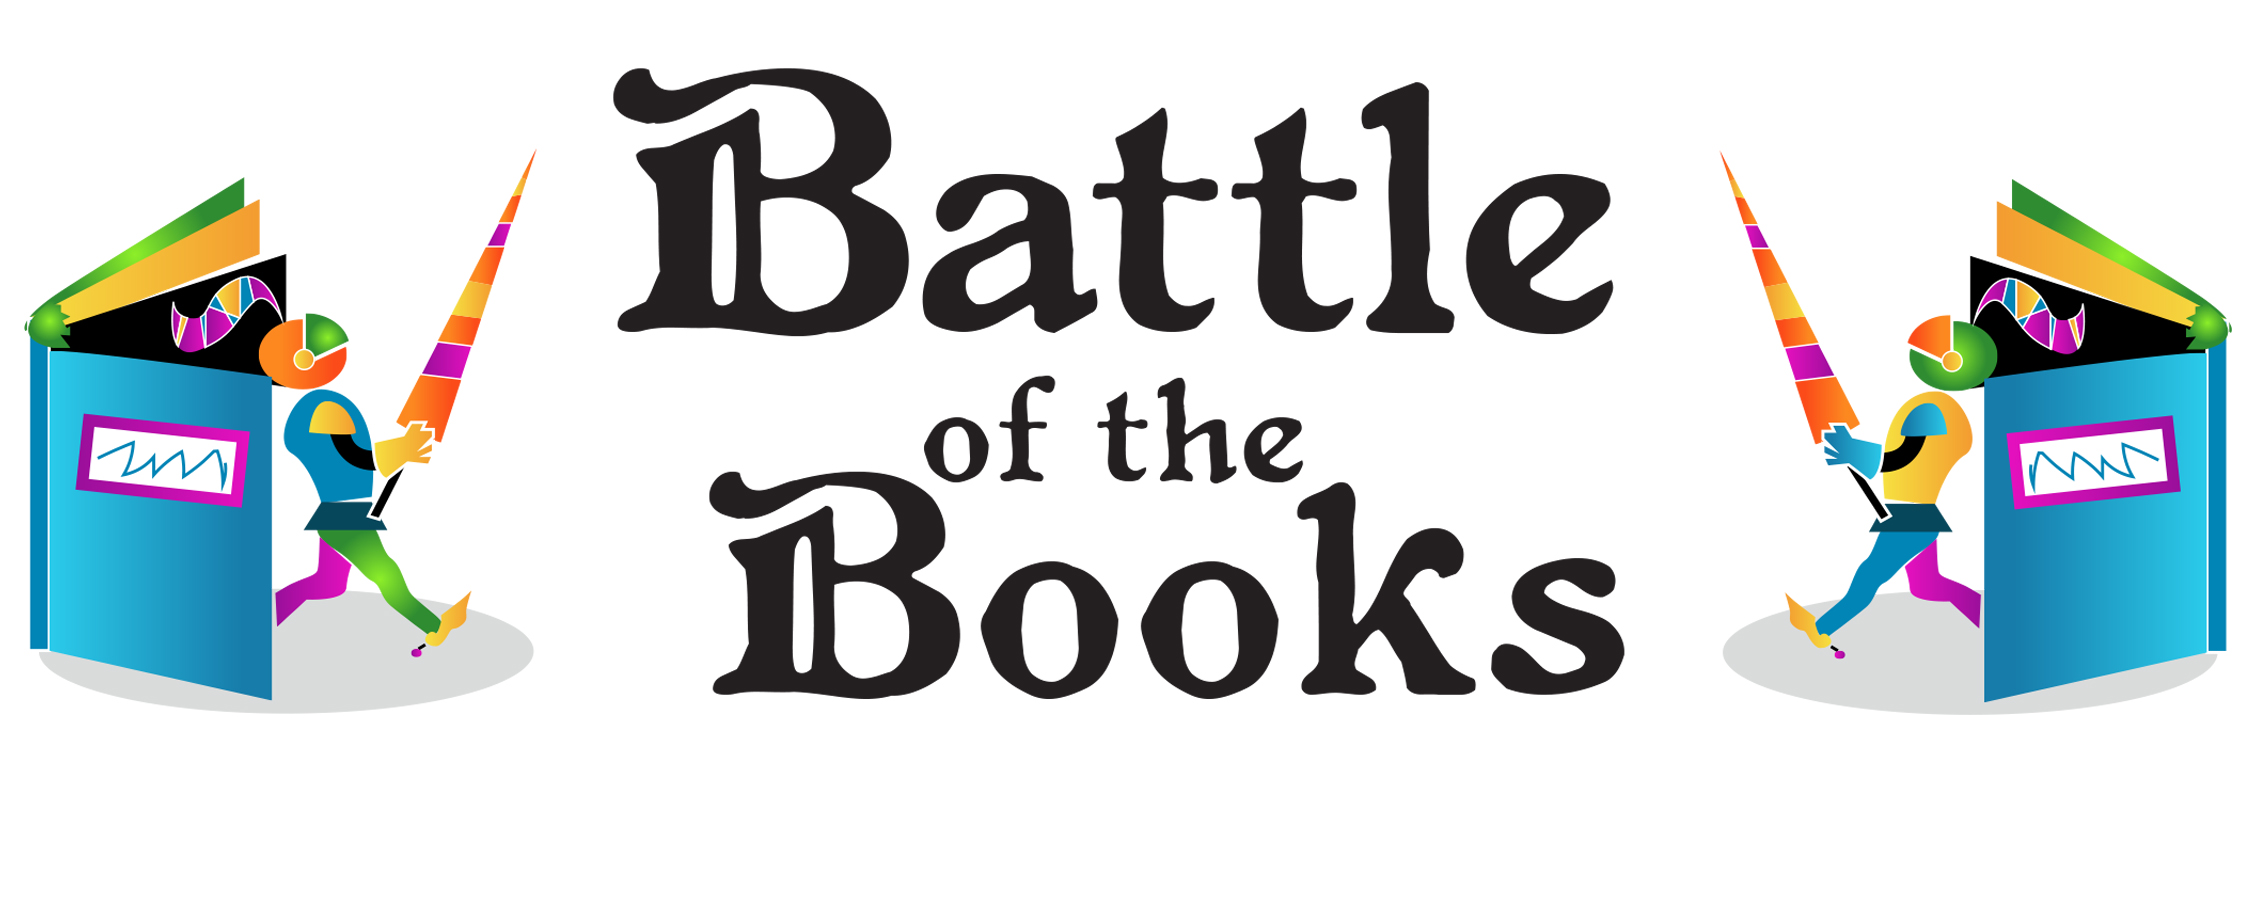 Deadlines & Information for 4th, 5th & 6th Grades Battle of the.